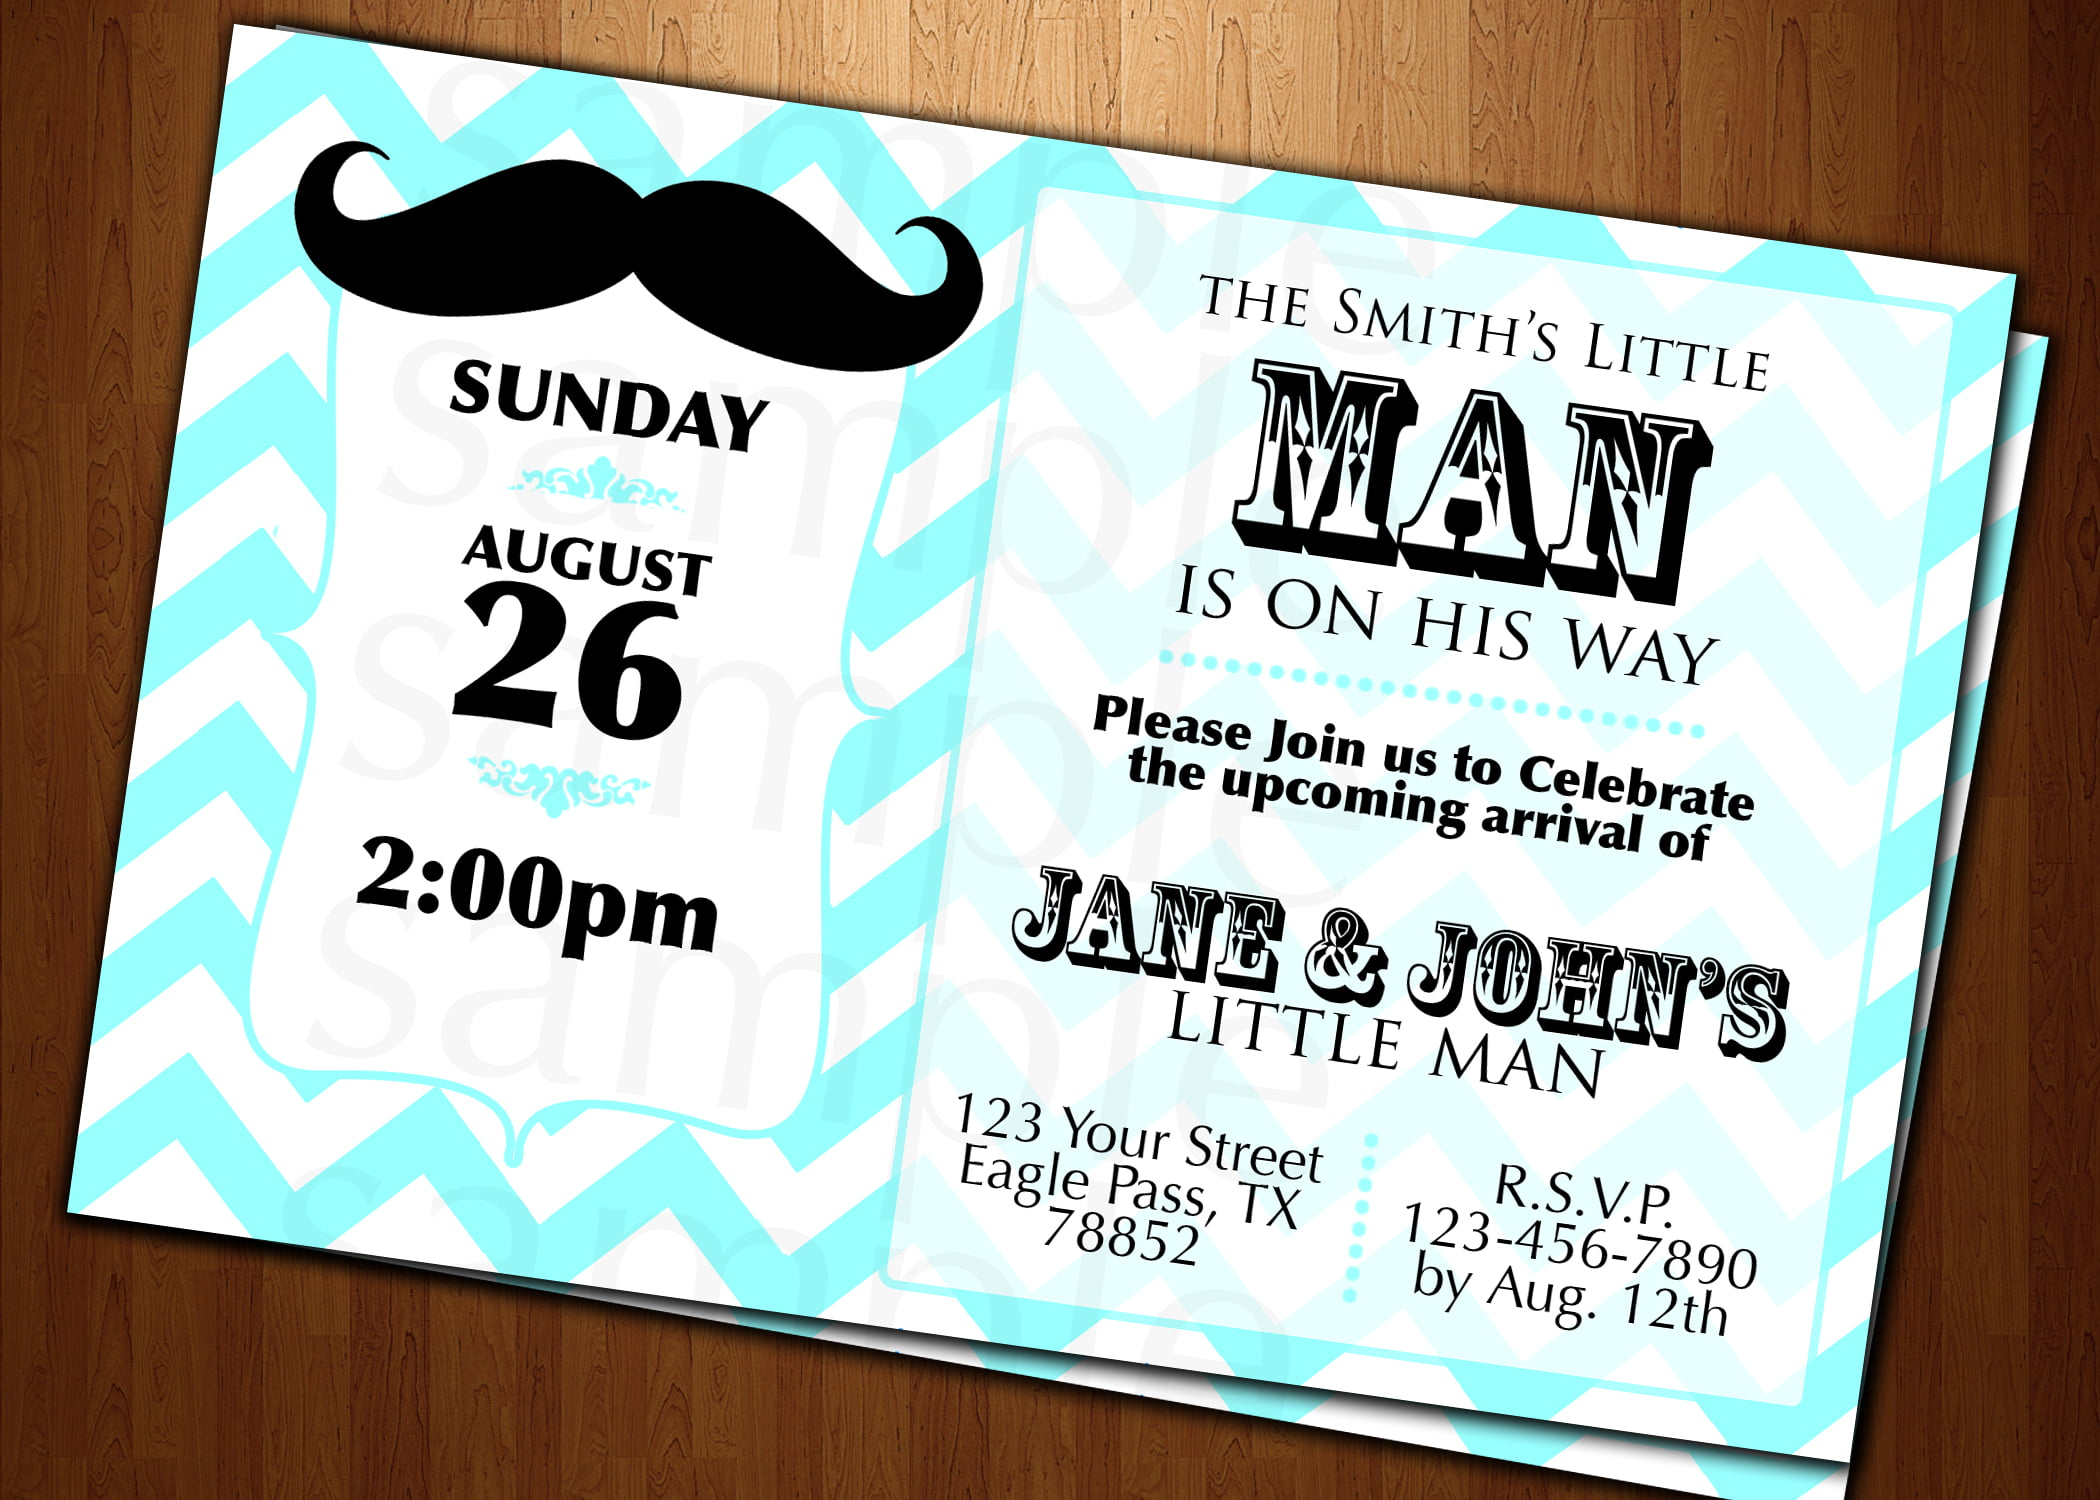 Birthday card shower invitations wording drevio invitations design mustache birthday card shower invitations wording filmwisefo Image collections